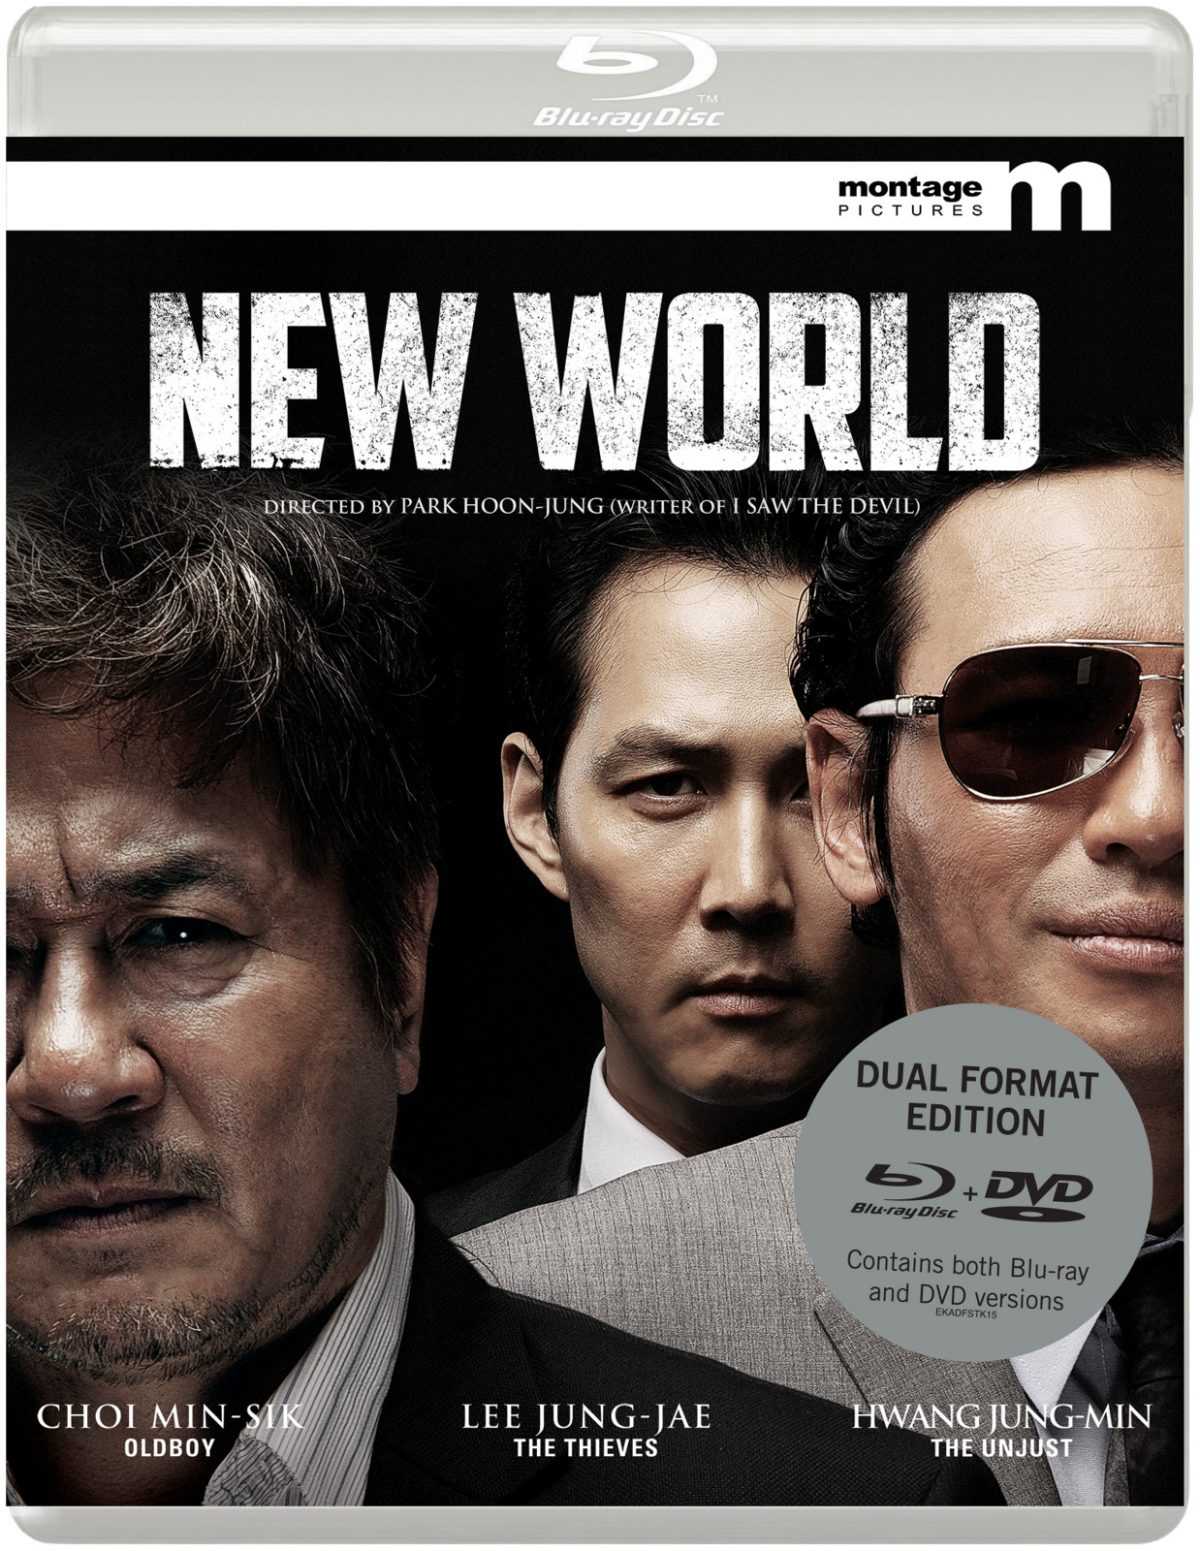 #BlazingMinds has got together with #EurekaEntertainment to bring you the chance to win one of three copies of the #NewWorld on Dual Format (Blu-ray & DVD) edition